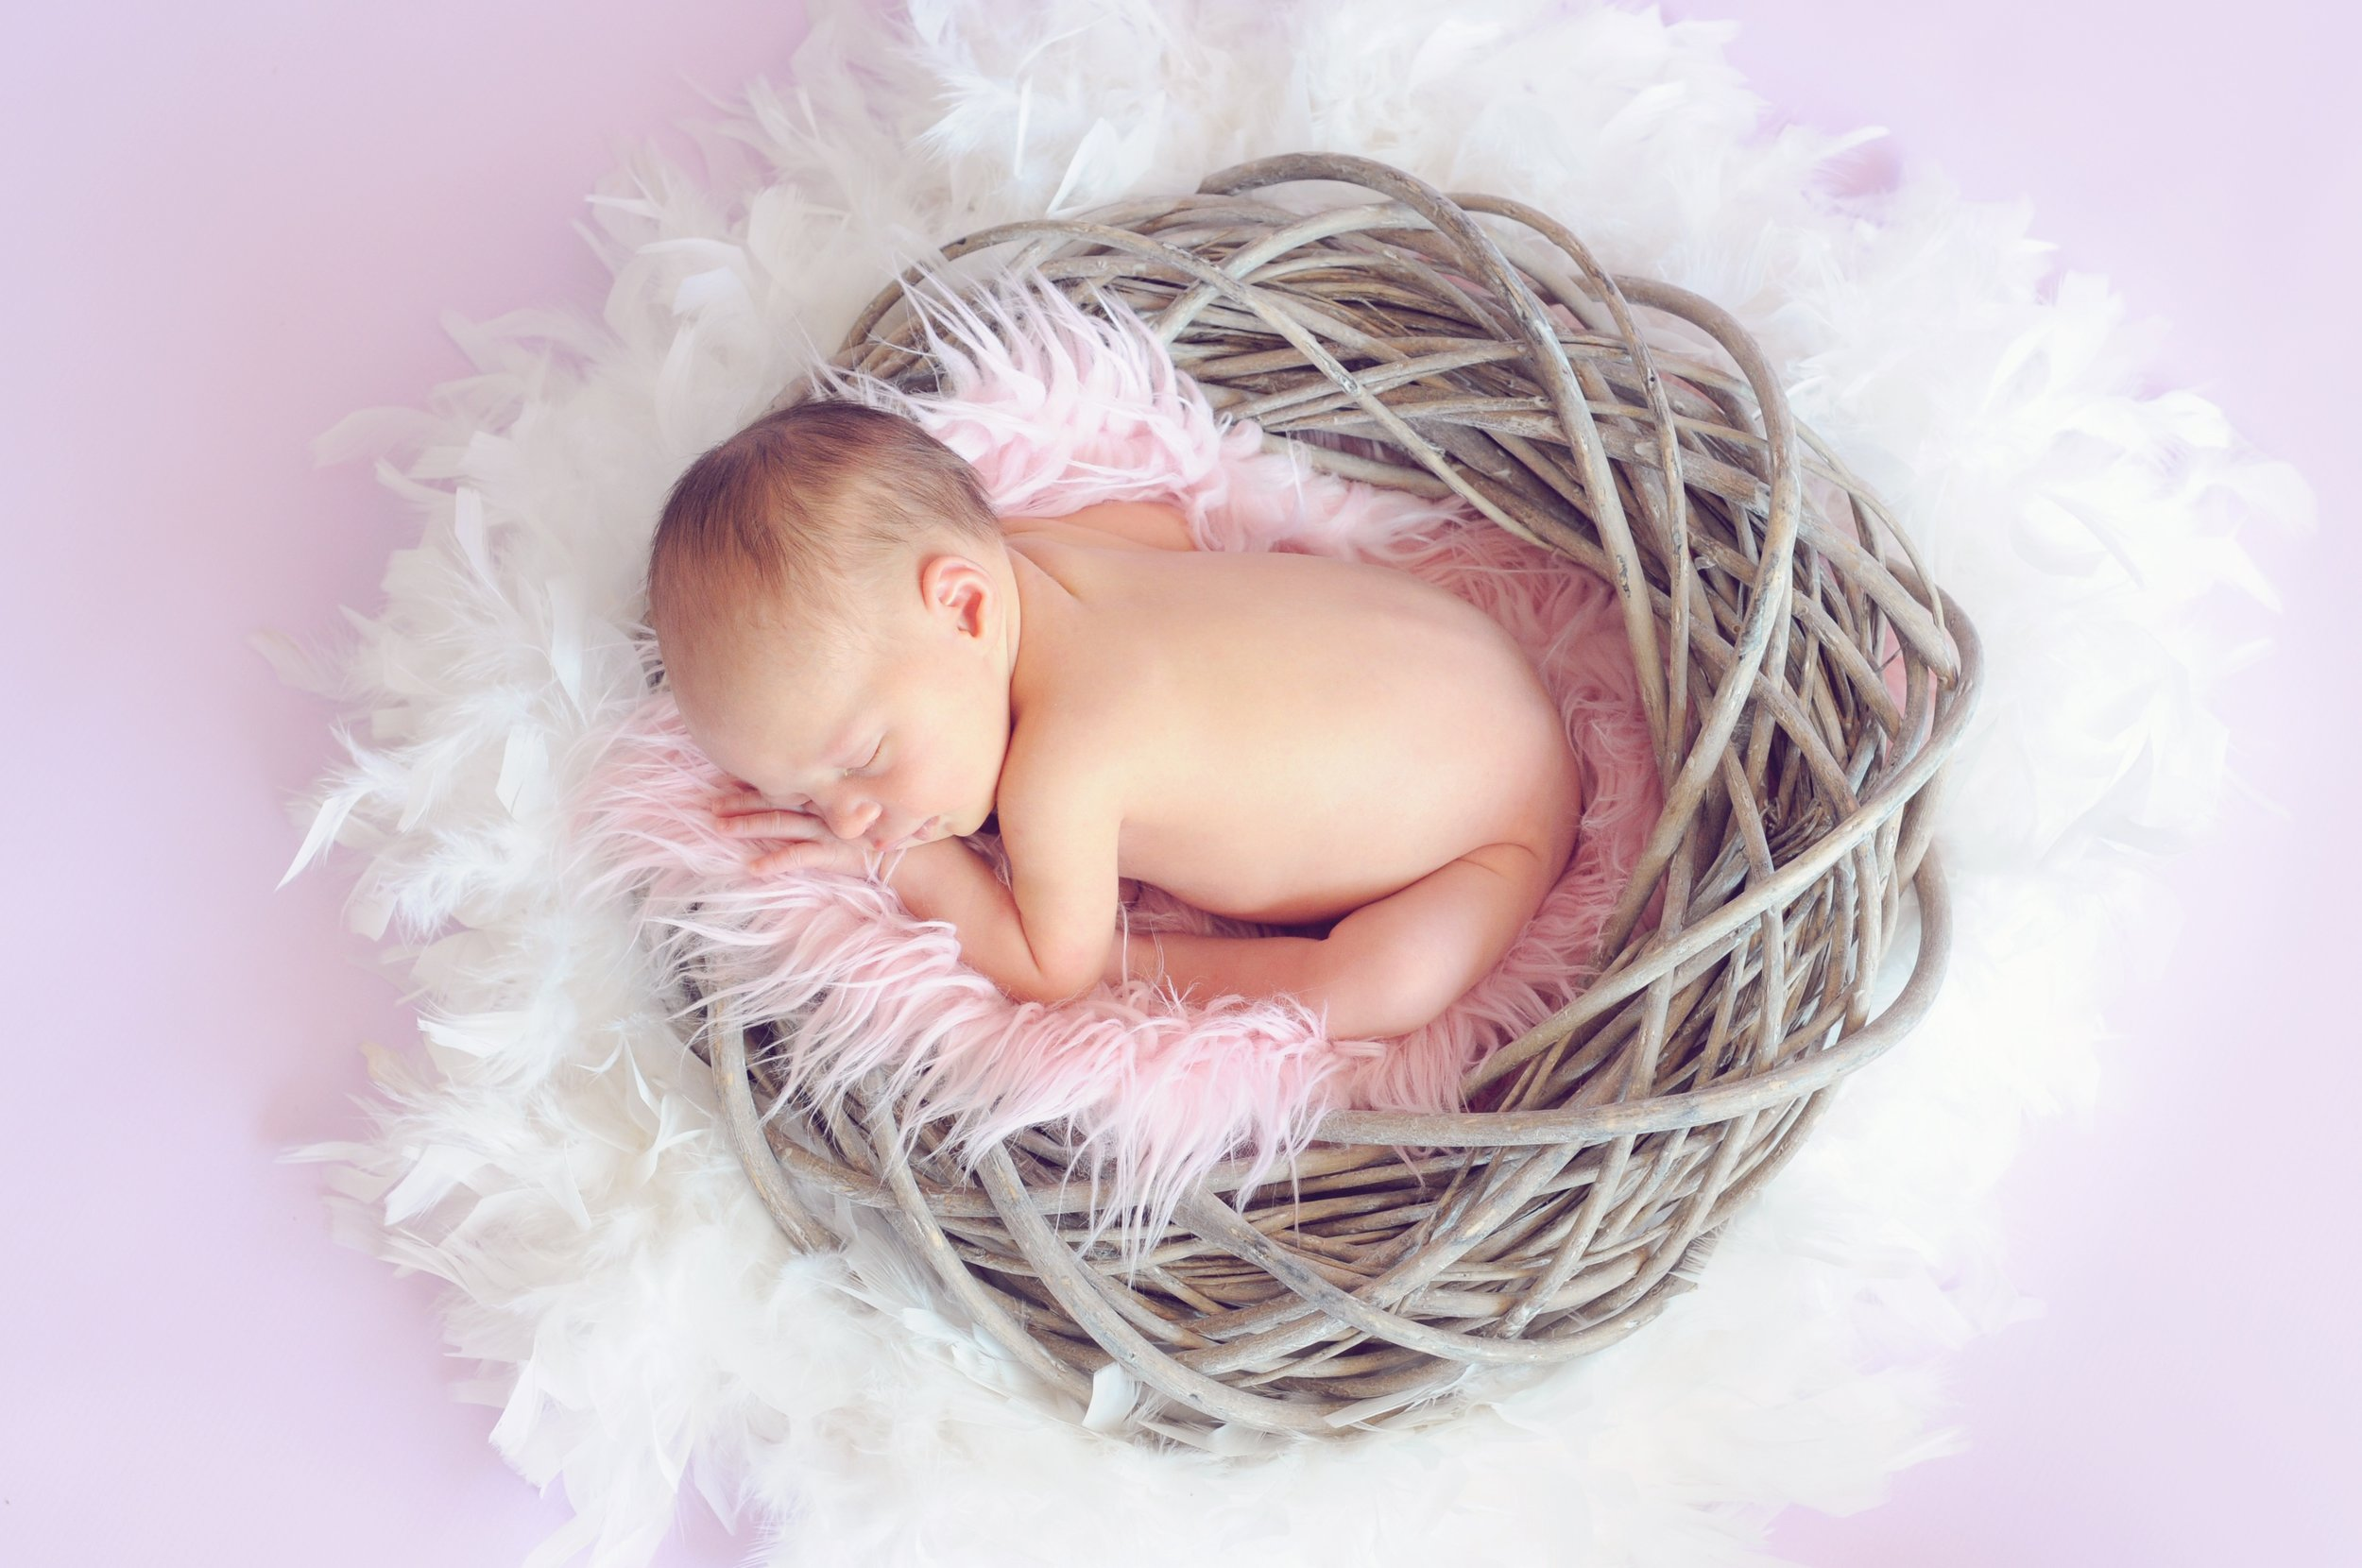 Newborn baby in a nest of twigs and fluff